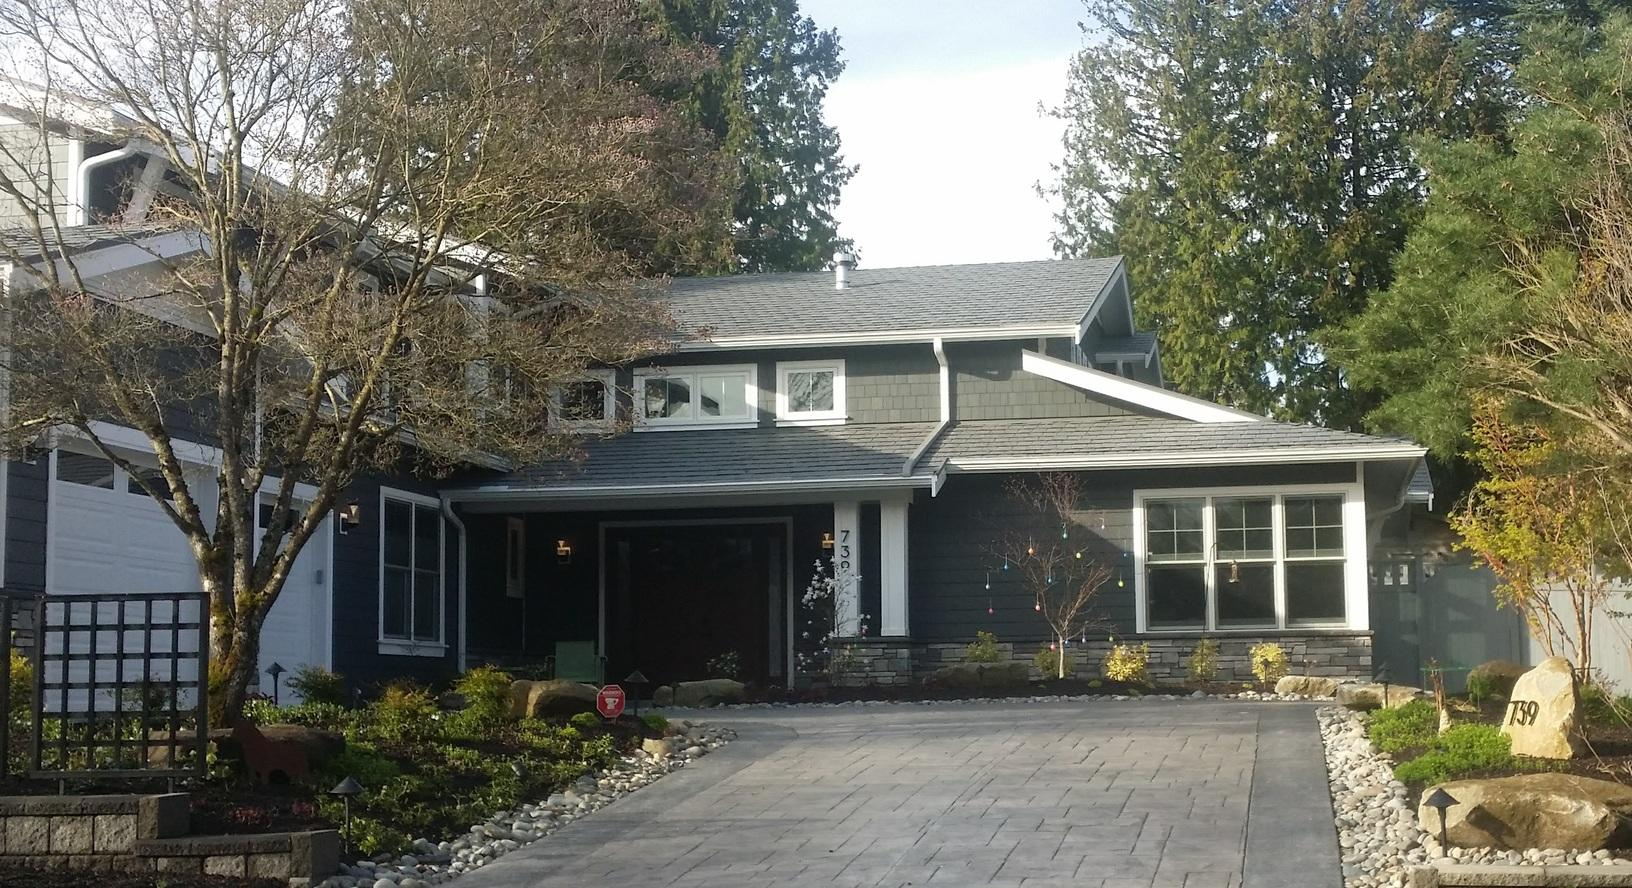 Kirkland, WA Stamped Metal Roof with MasterShield Gutter Guard for Fir Needles